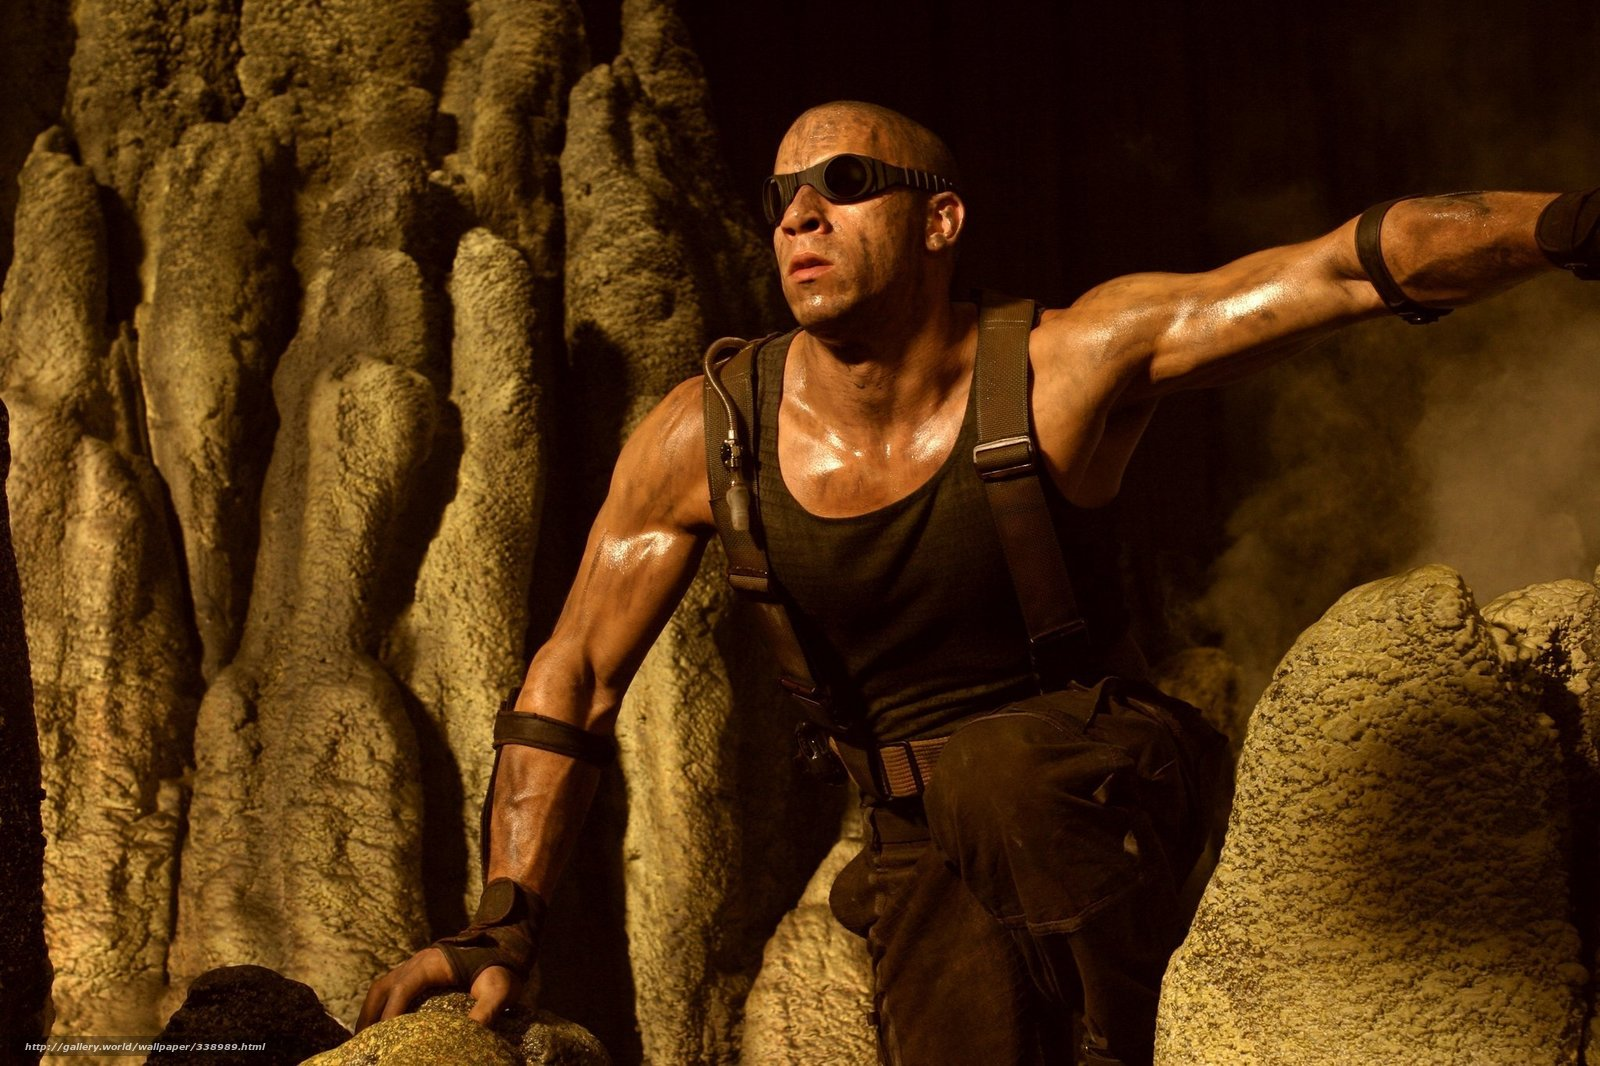 Download wallpaper The Chronicles of Riddick,  Vin Diesel,  Mark Sinclair Vincent,  actor free desktop wallpaper in the resolution 2048x1364 — picture №338989